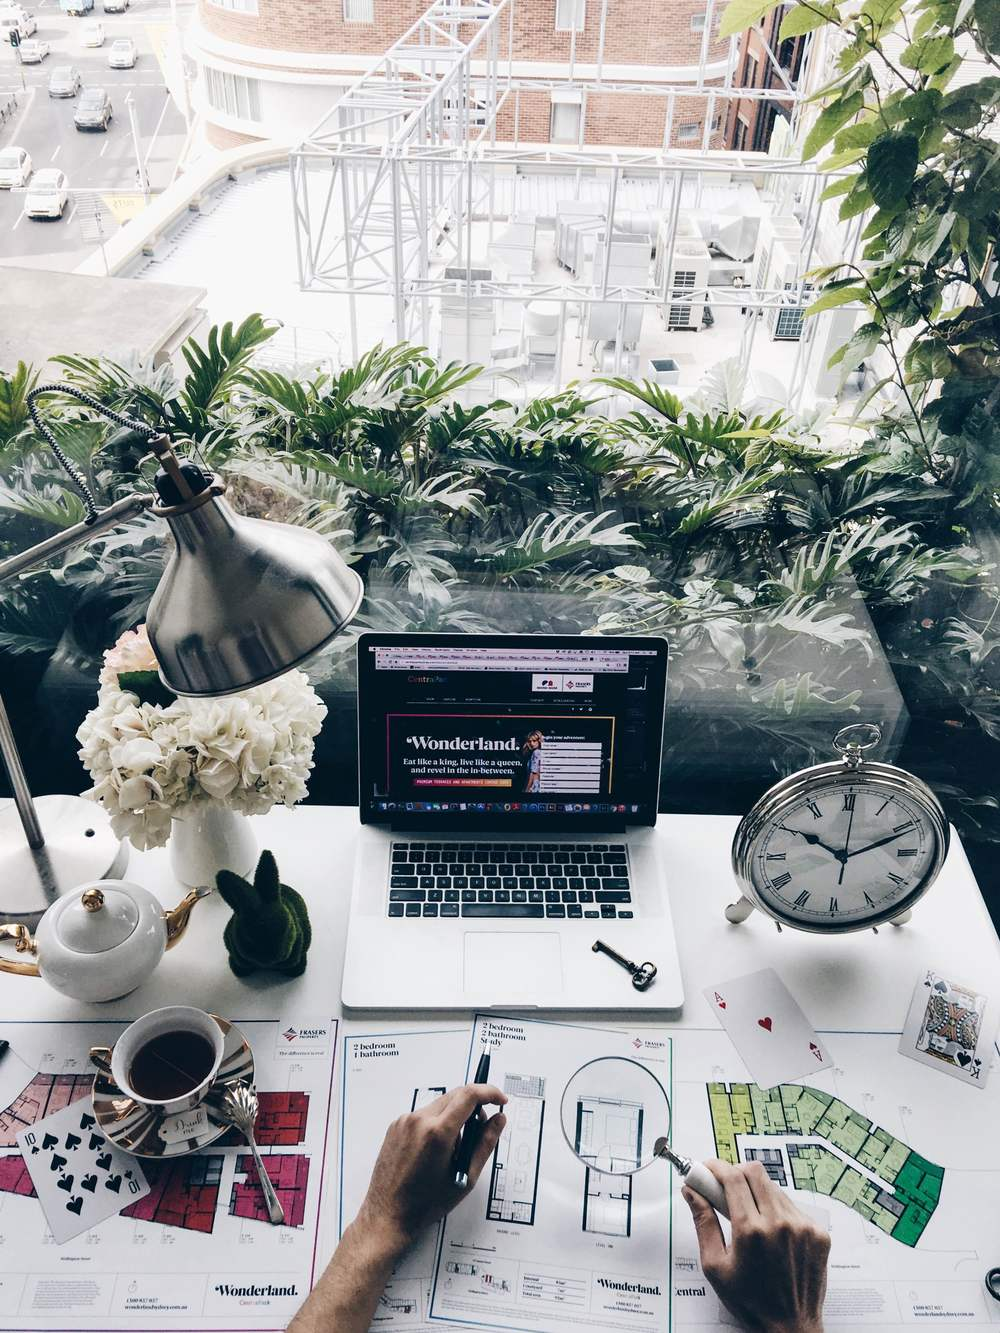 I am usually the most productive when my work space is filled with lots of natural light away from all the noise pollution from the city. You'd think that living in the city would be loud and noisy, but behind these transparent walls I don't hear a thing.    I love working from behind these vertical hanging gardens and I always feel inspired to keep on creating new content.